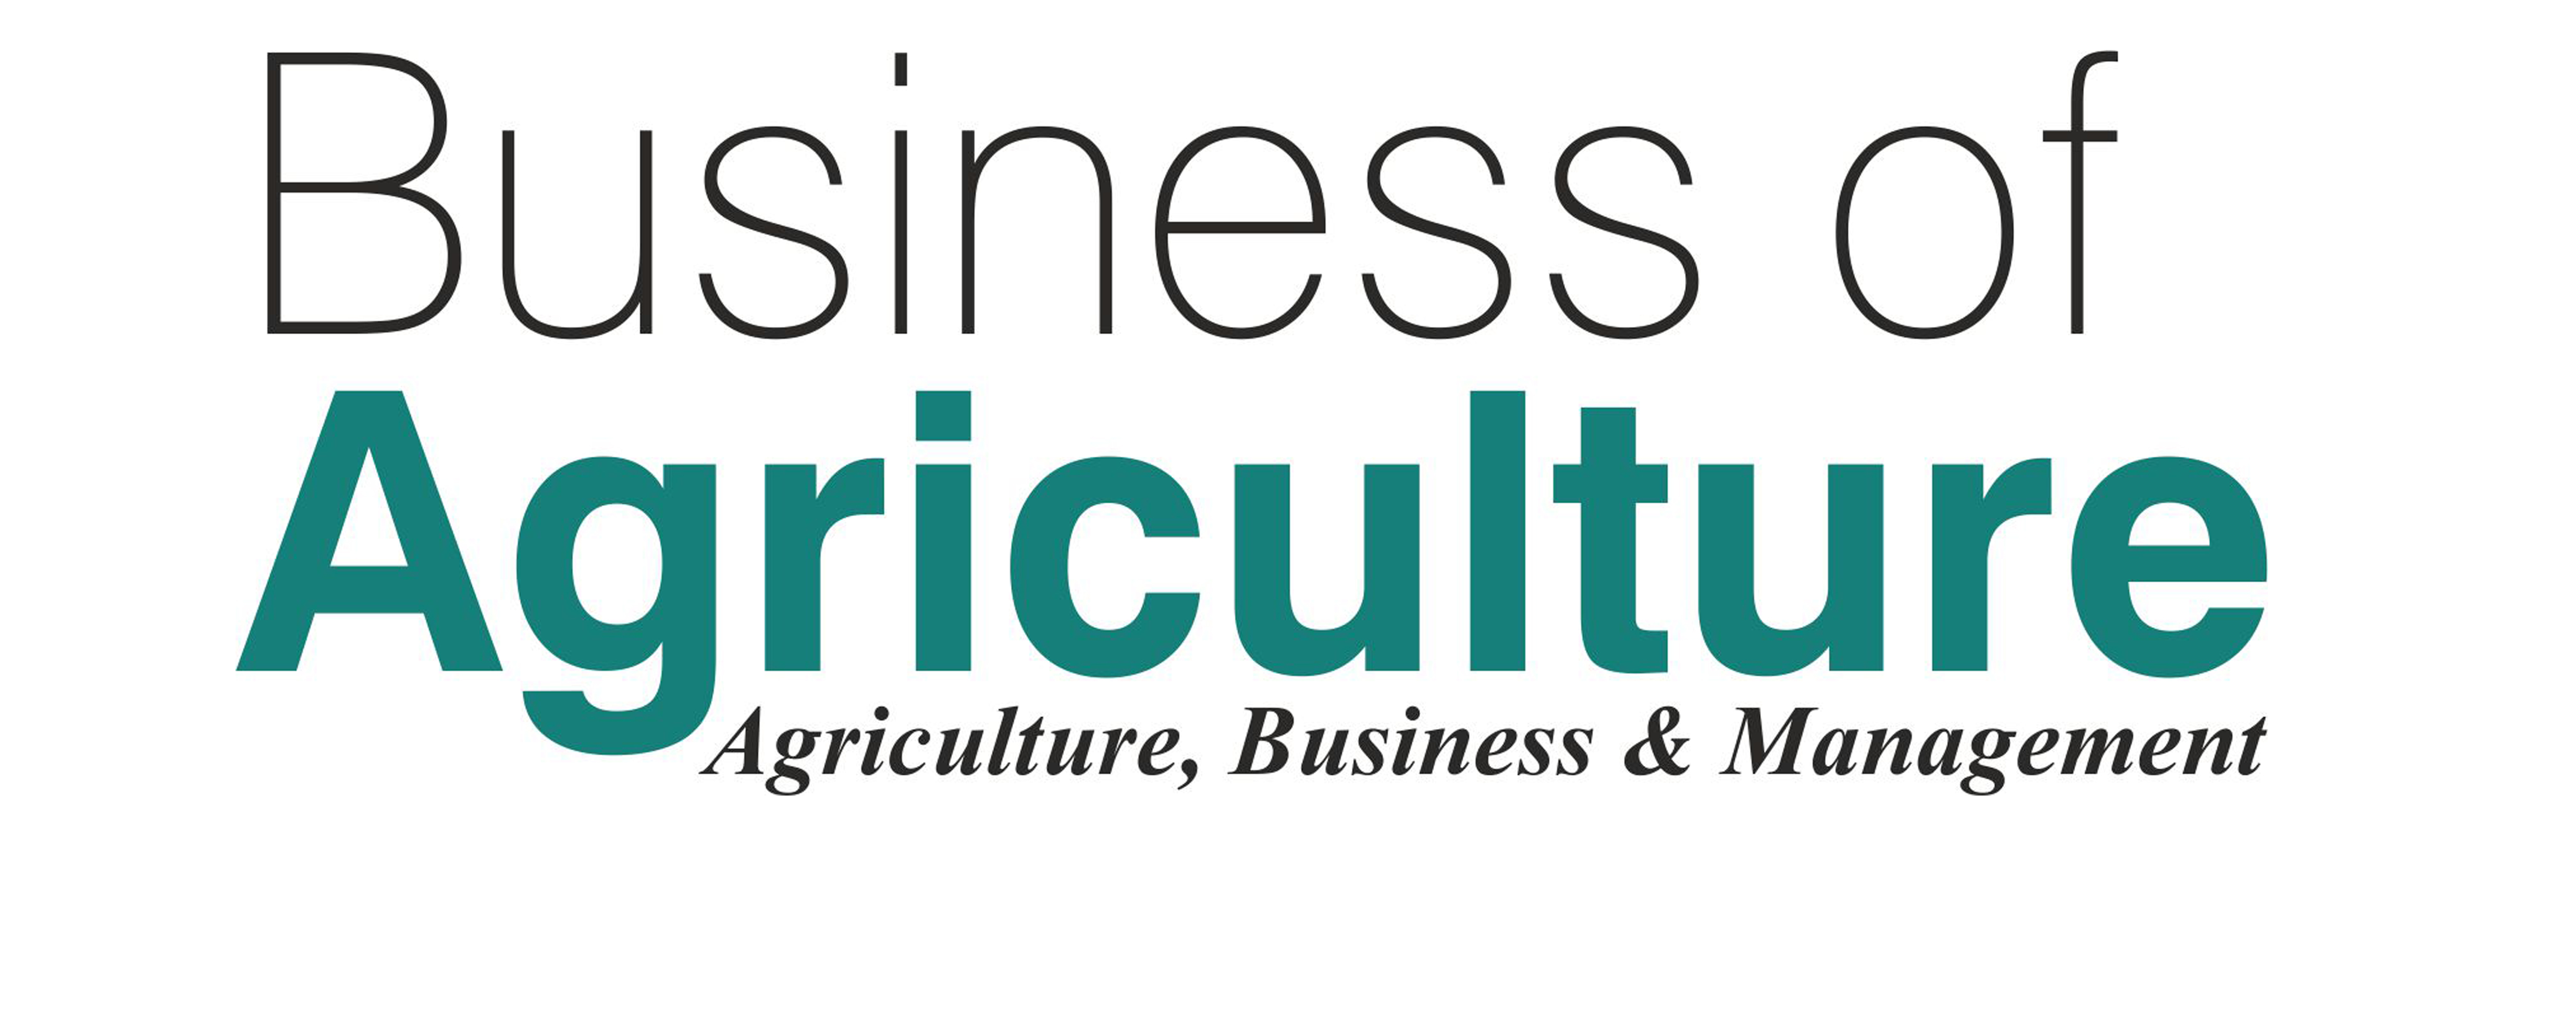 businessofagriculture